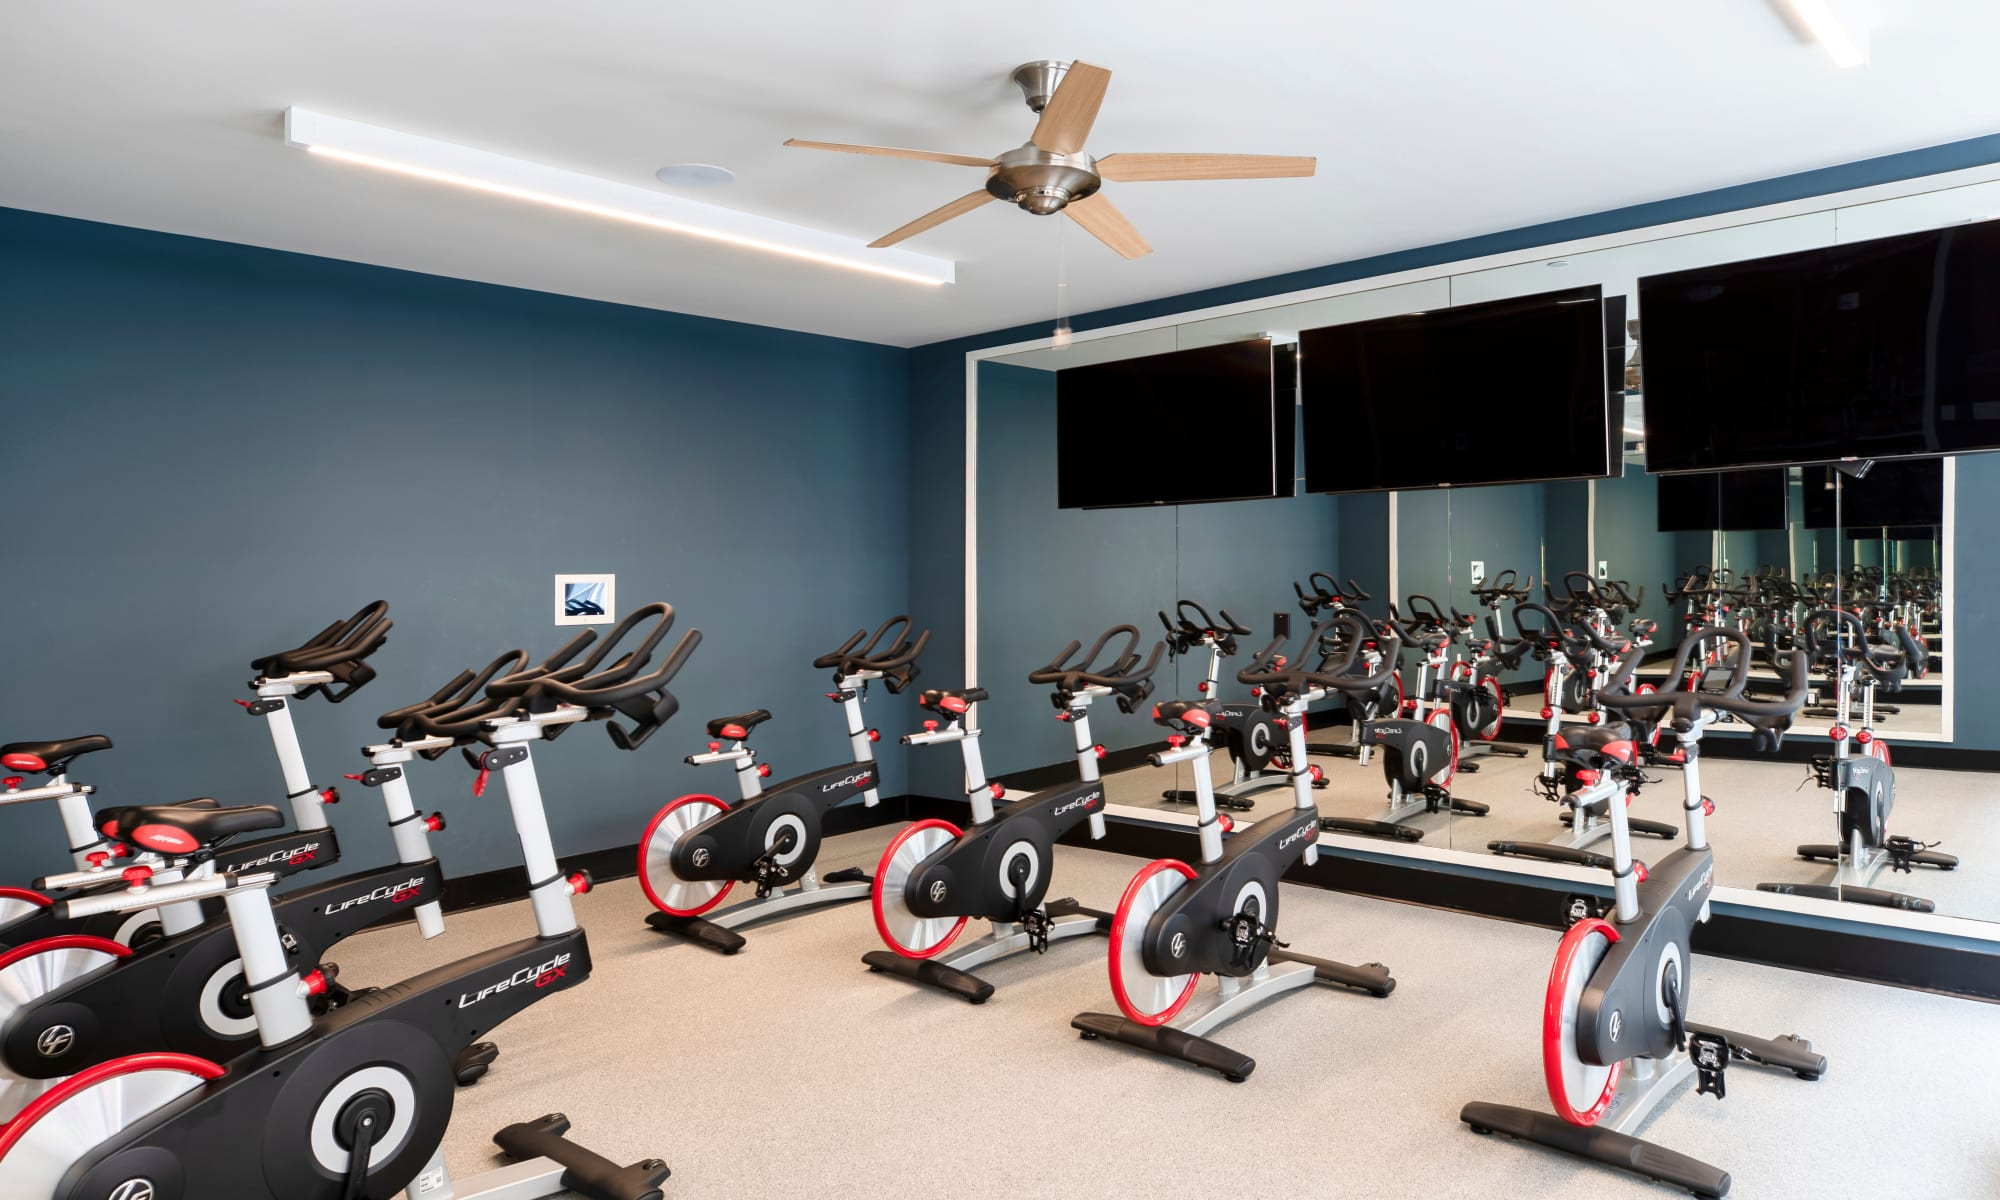 Our Apartments in Secaucus, New Jersey offer a Fitness Center